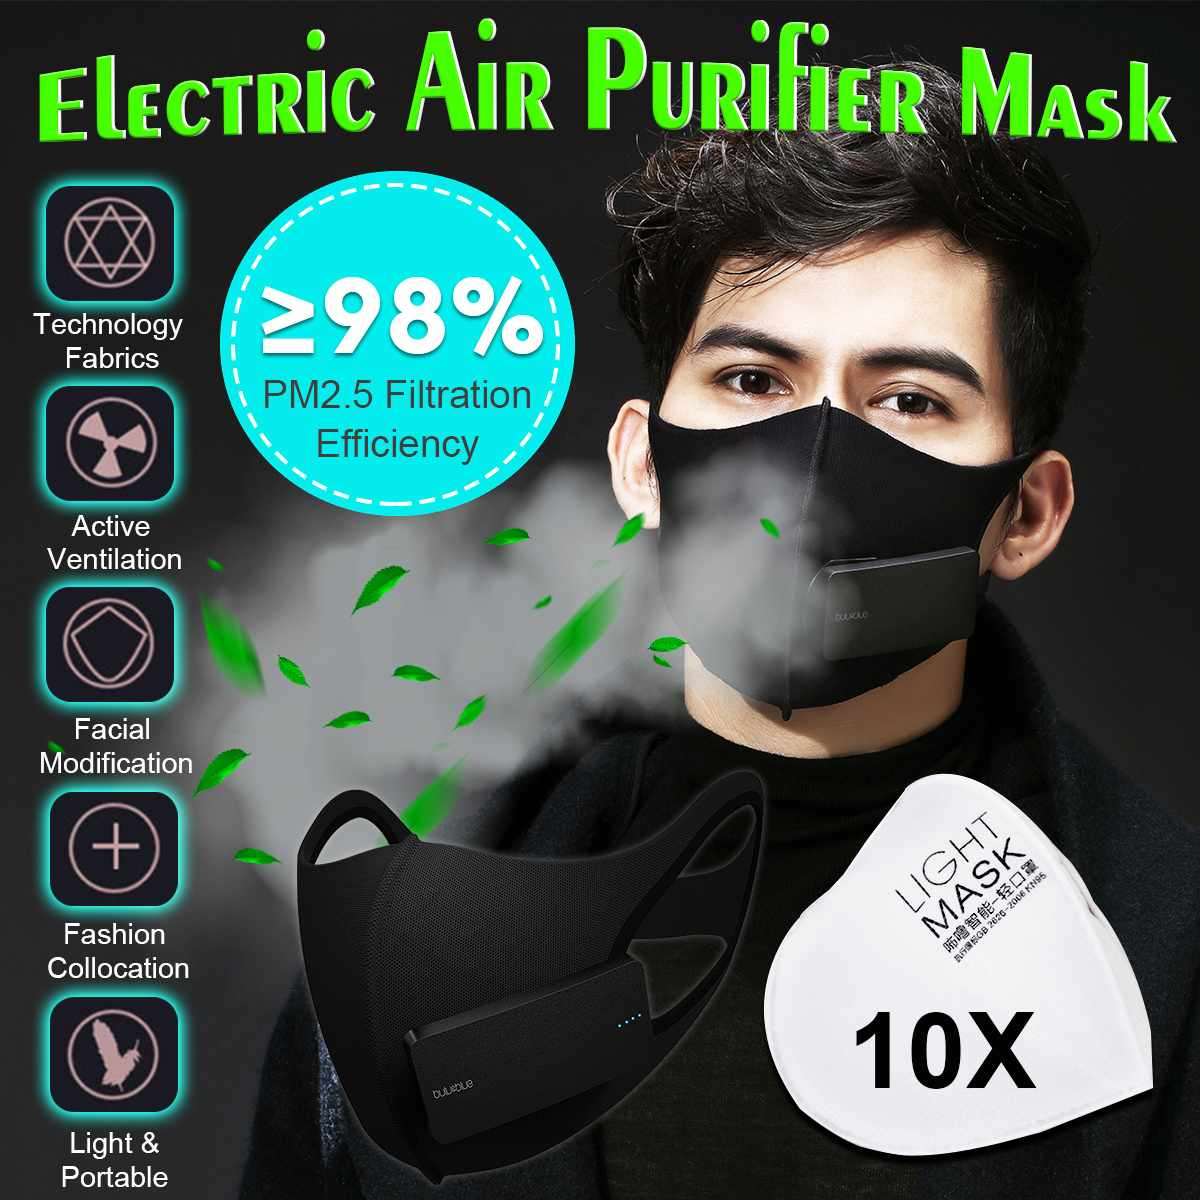 Workplace Safety Supplies Hot Dust Mask Usb Electric Air Purifying Face Masks Anti-fog Haze Pm2.5 Pm0.3 Pollen Breathable Valve Mask Anti Dust Pollution